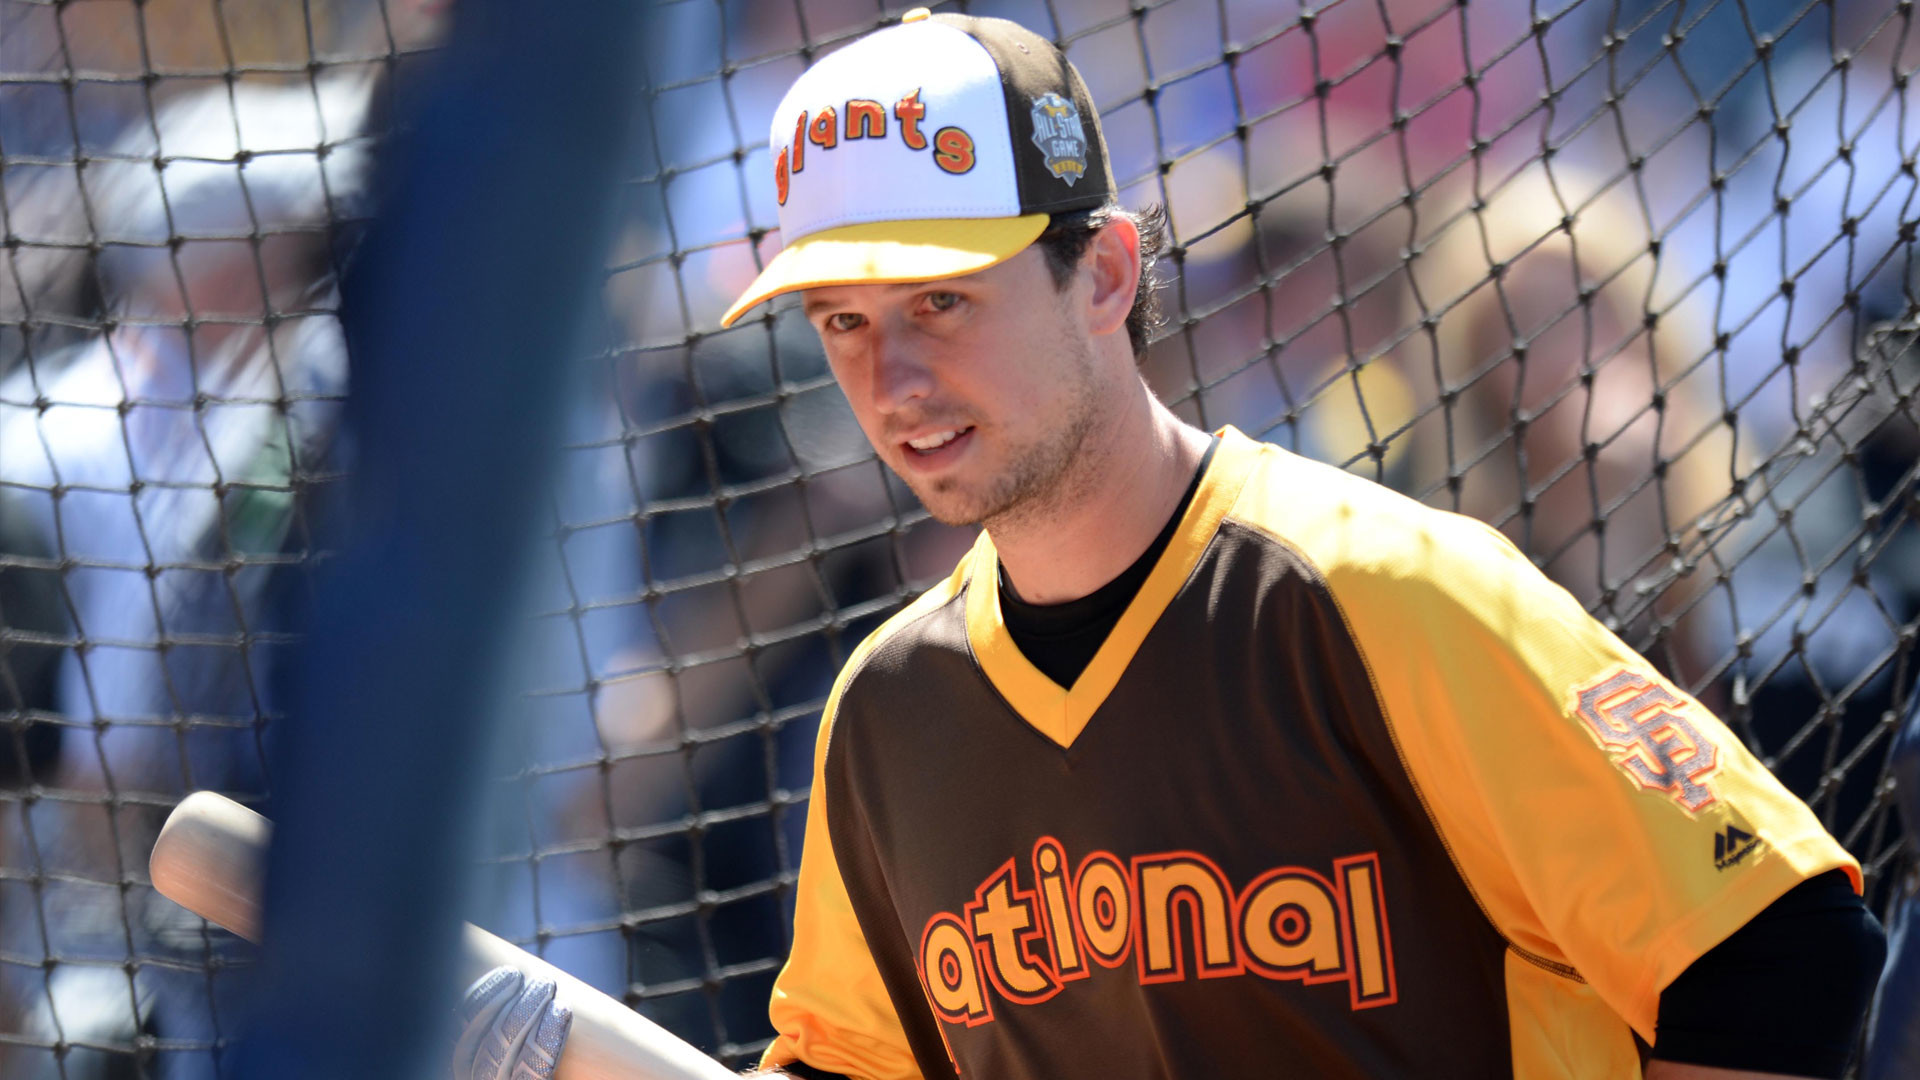 MLB All-Star Game lineups: Posey batting clean-up for NL | NBCS Bay Area